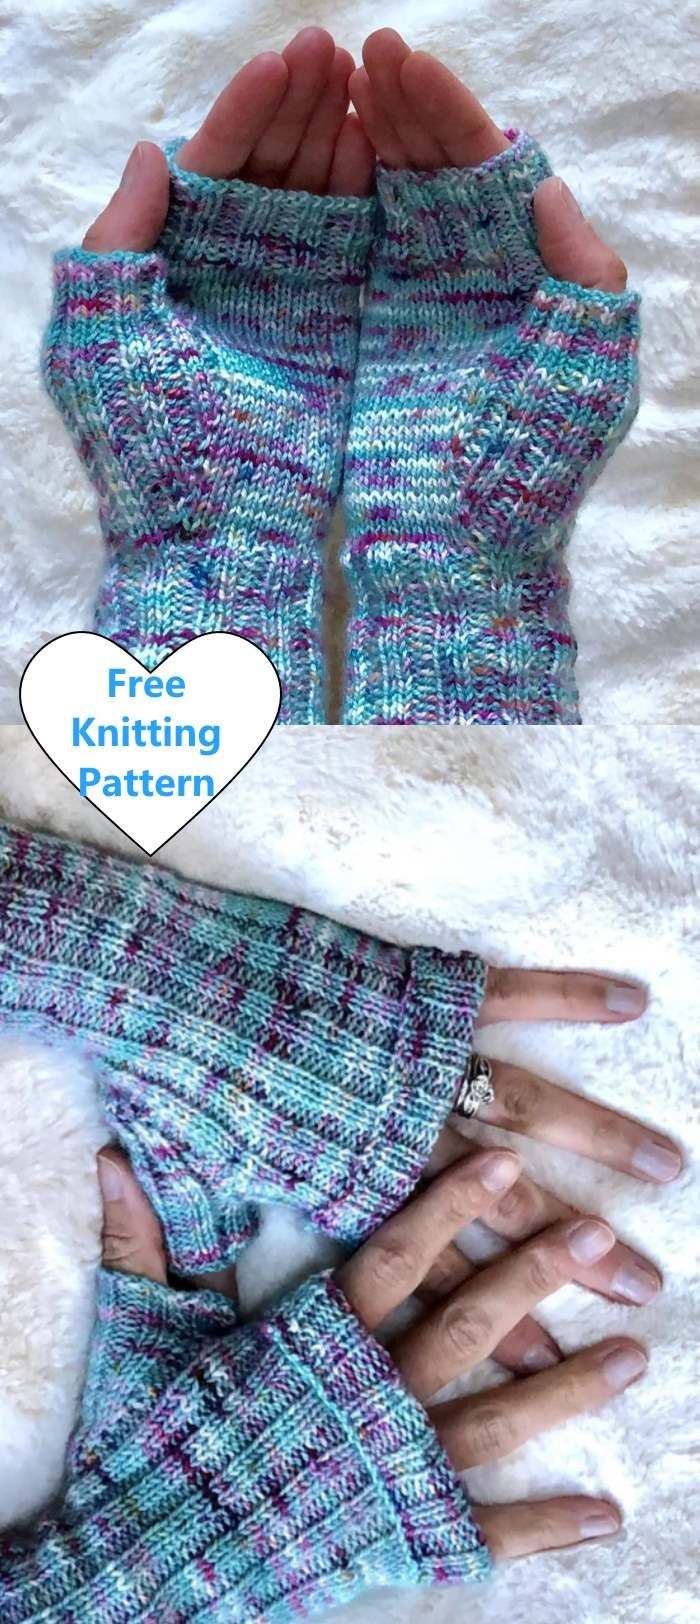 Free Knitting Pattern for Easy Ribbed Mitts